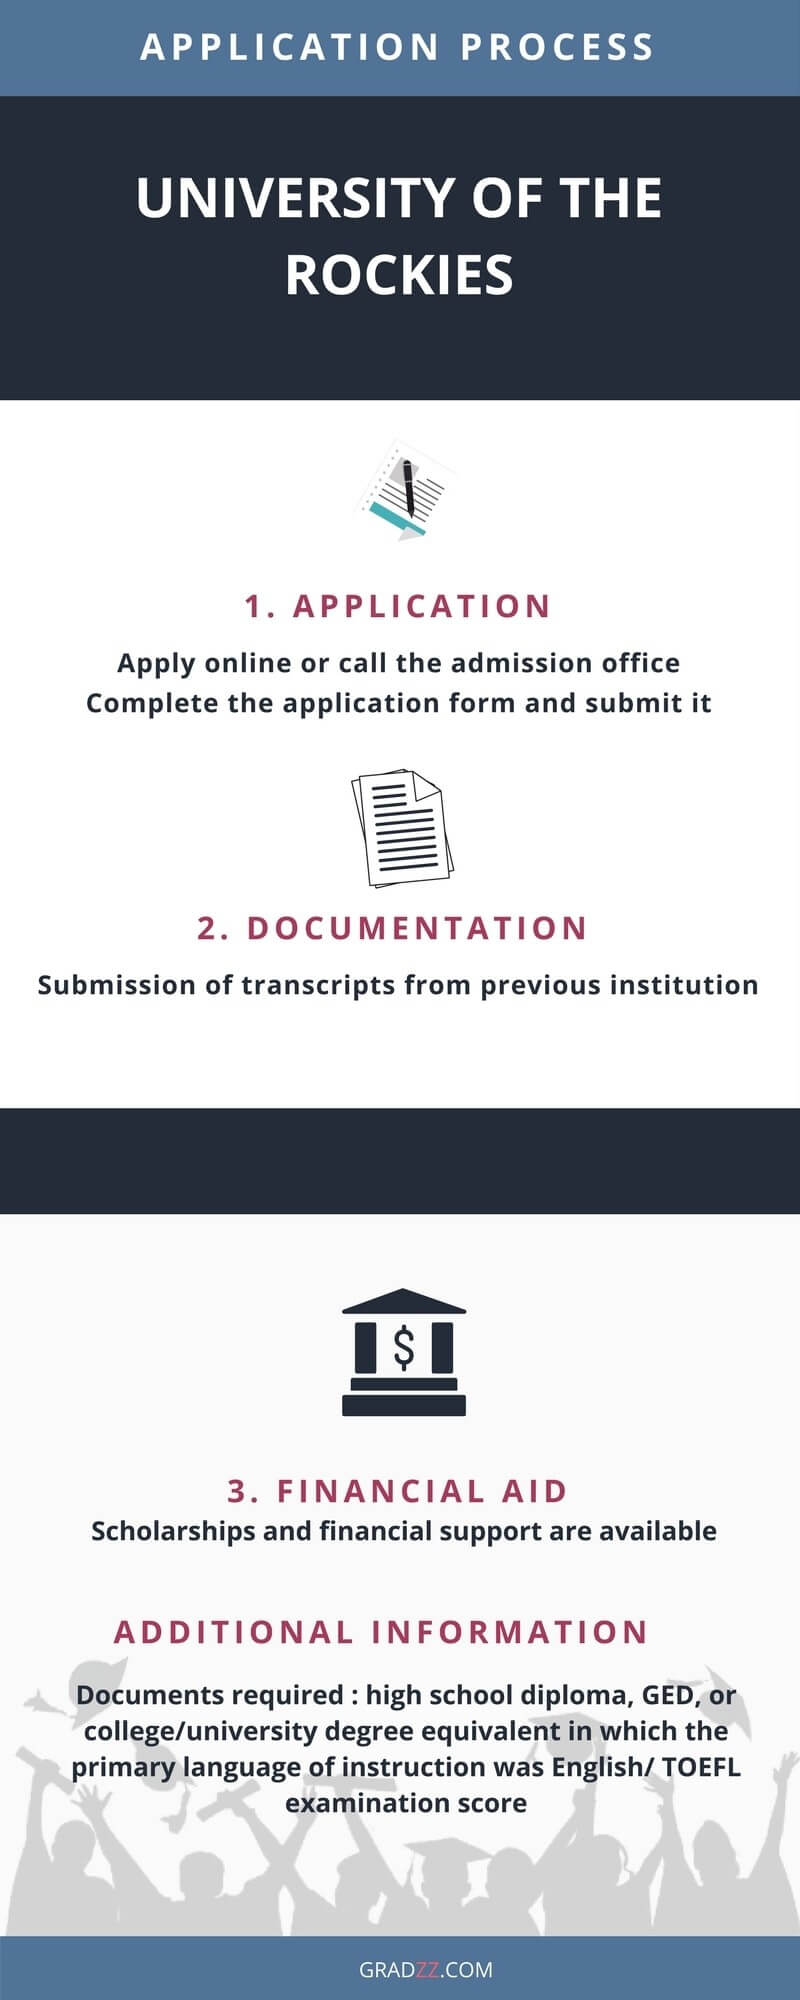 University of the Rockies Admission Process